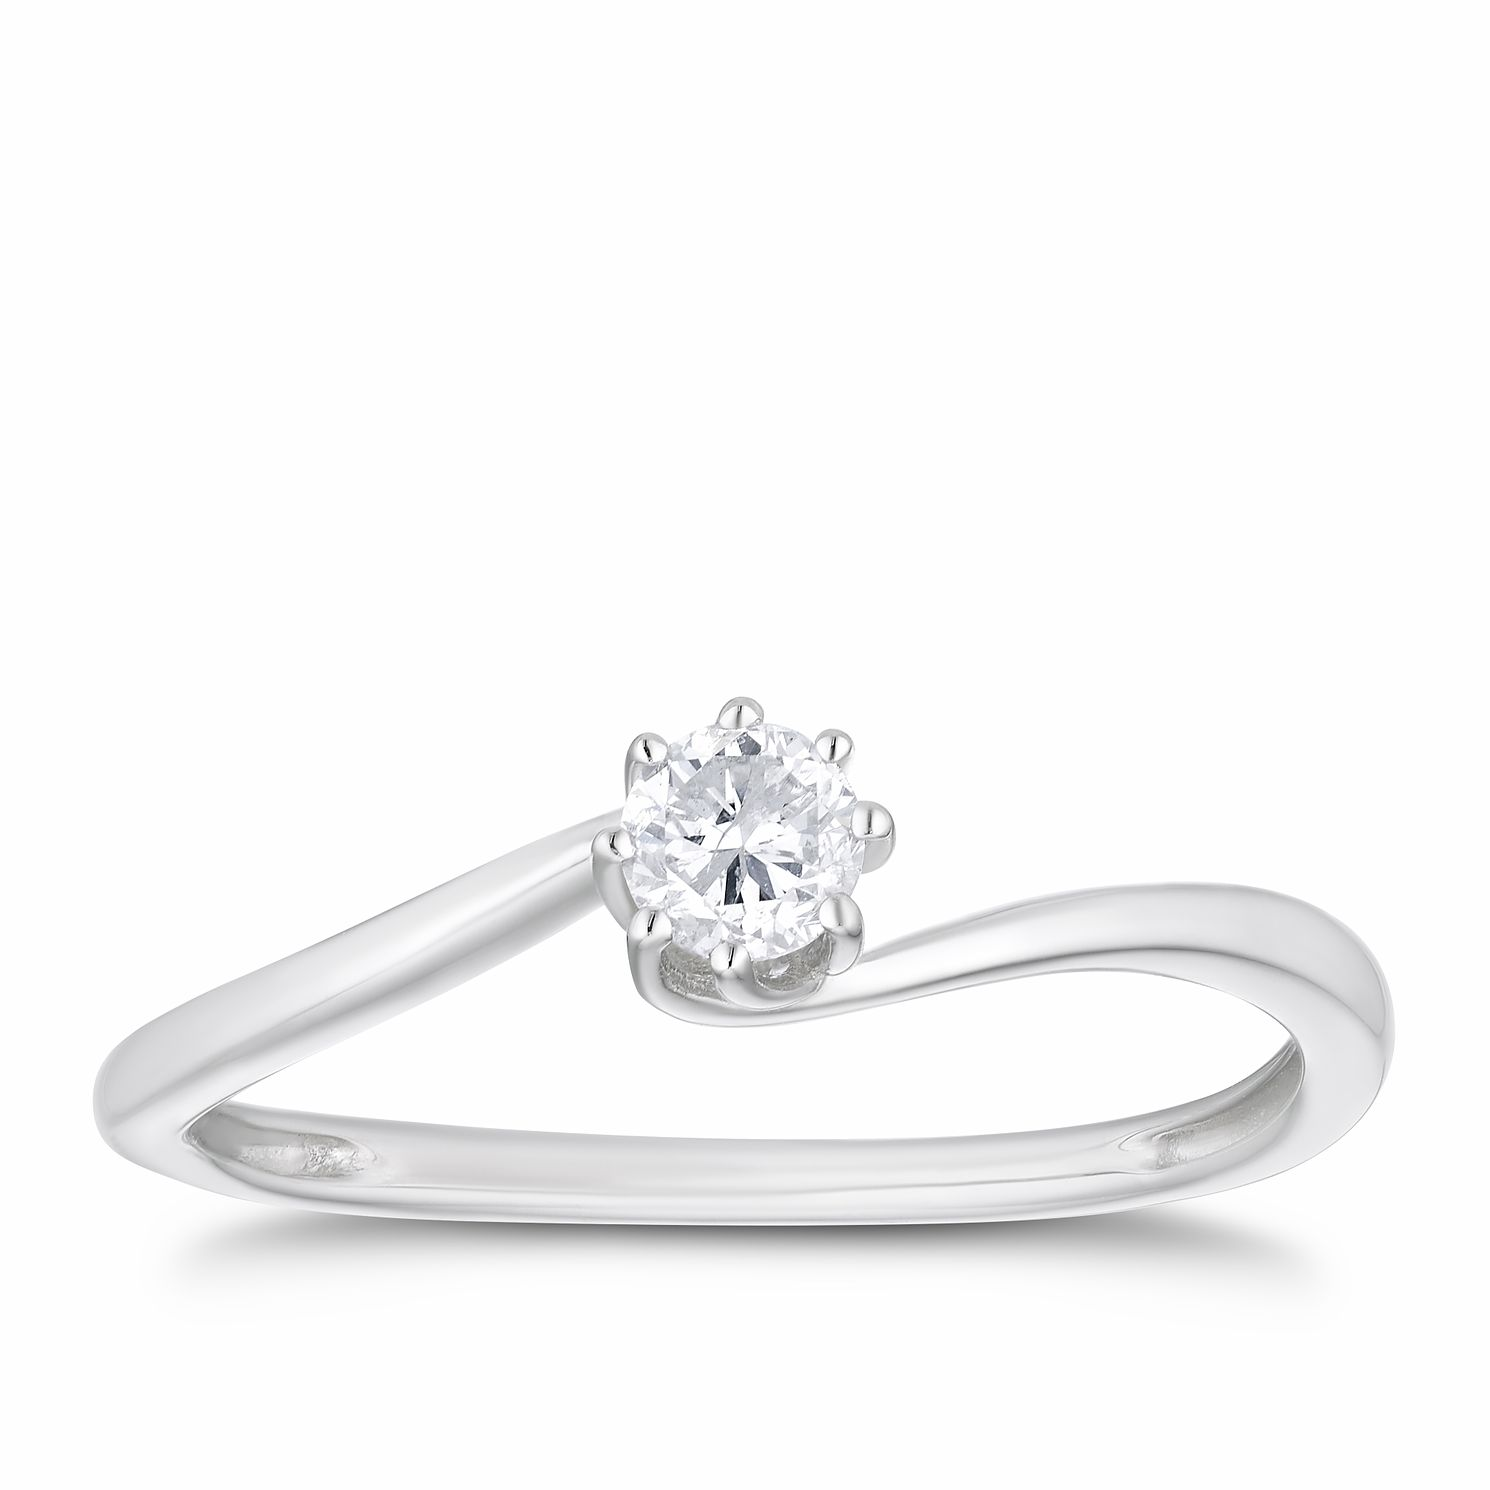 9ct White Gold 1/5ct Diamond 8 Claw Twist Solitaire Ring - Product number 3376648